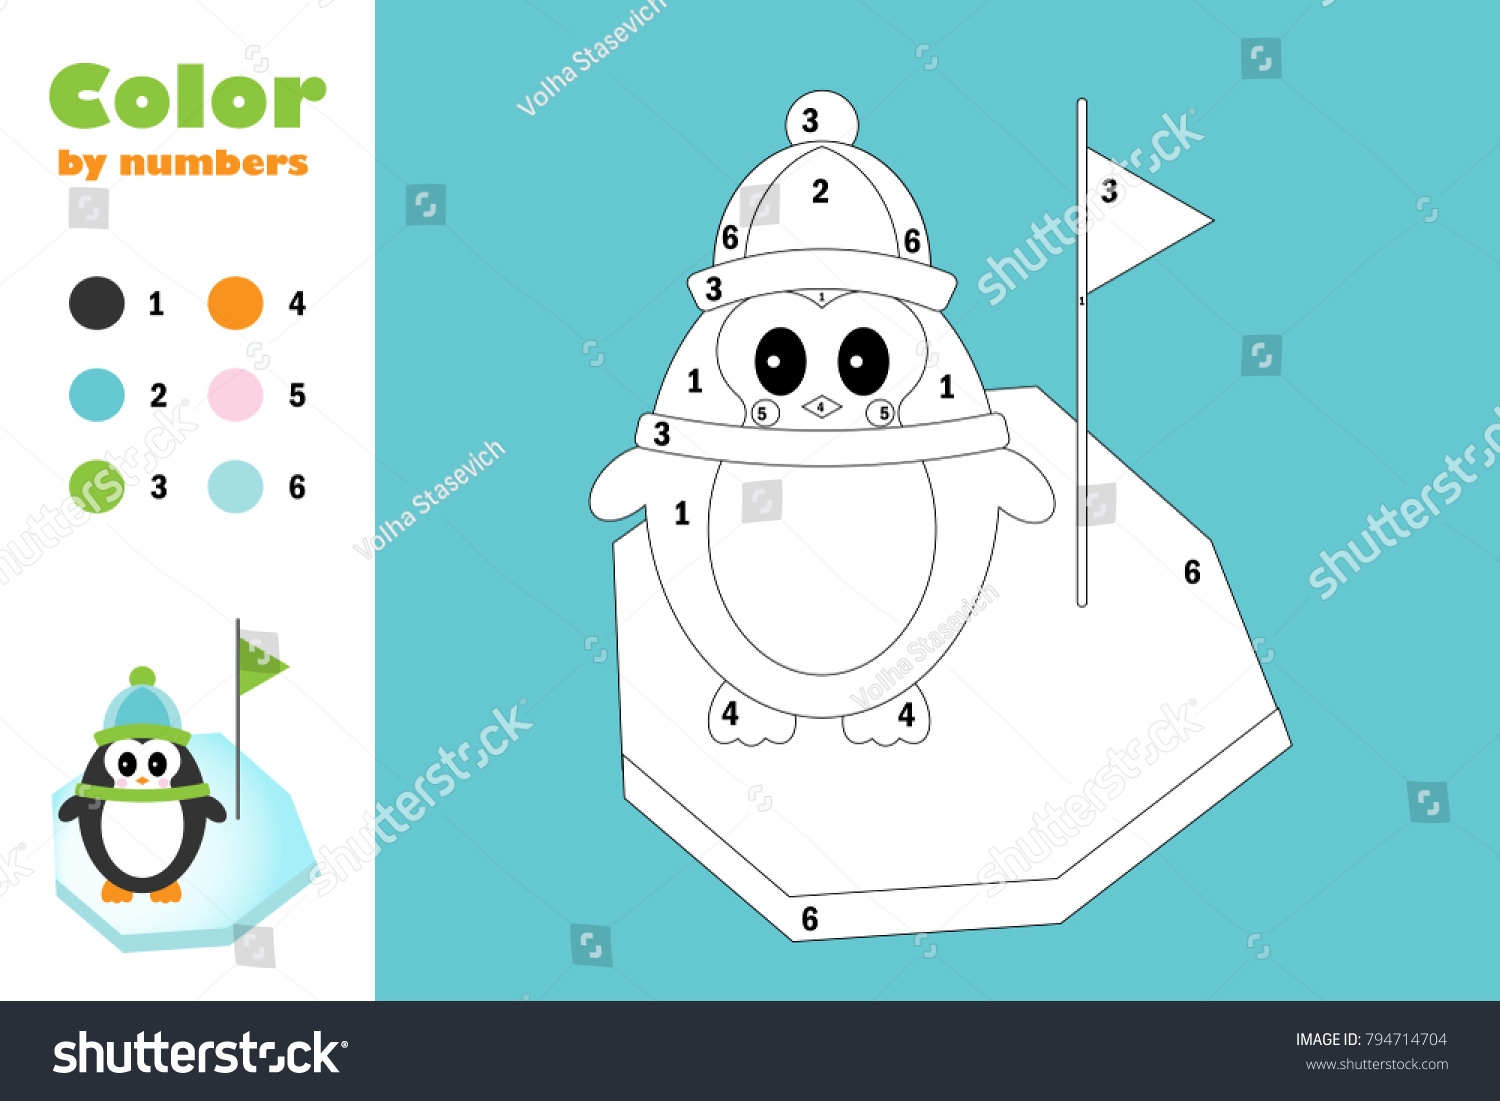 Penguin Cartoon Style Color By Number Stock Vector (Royalty Free ...